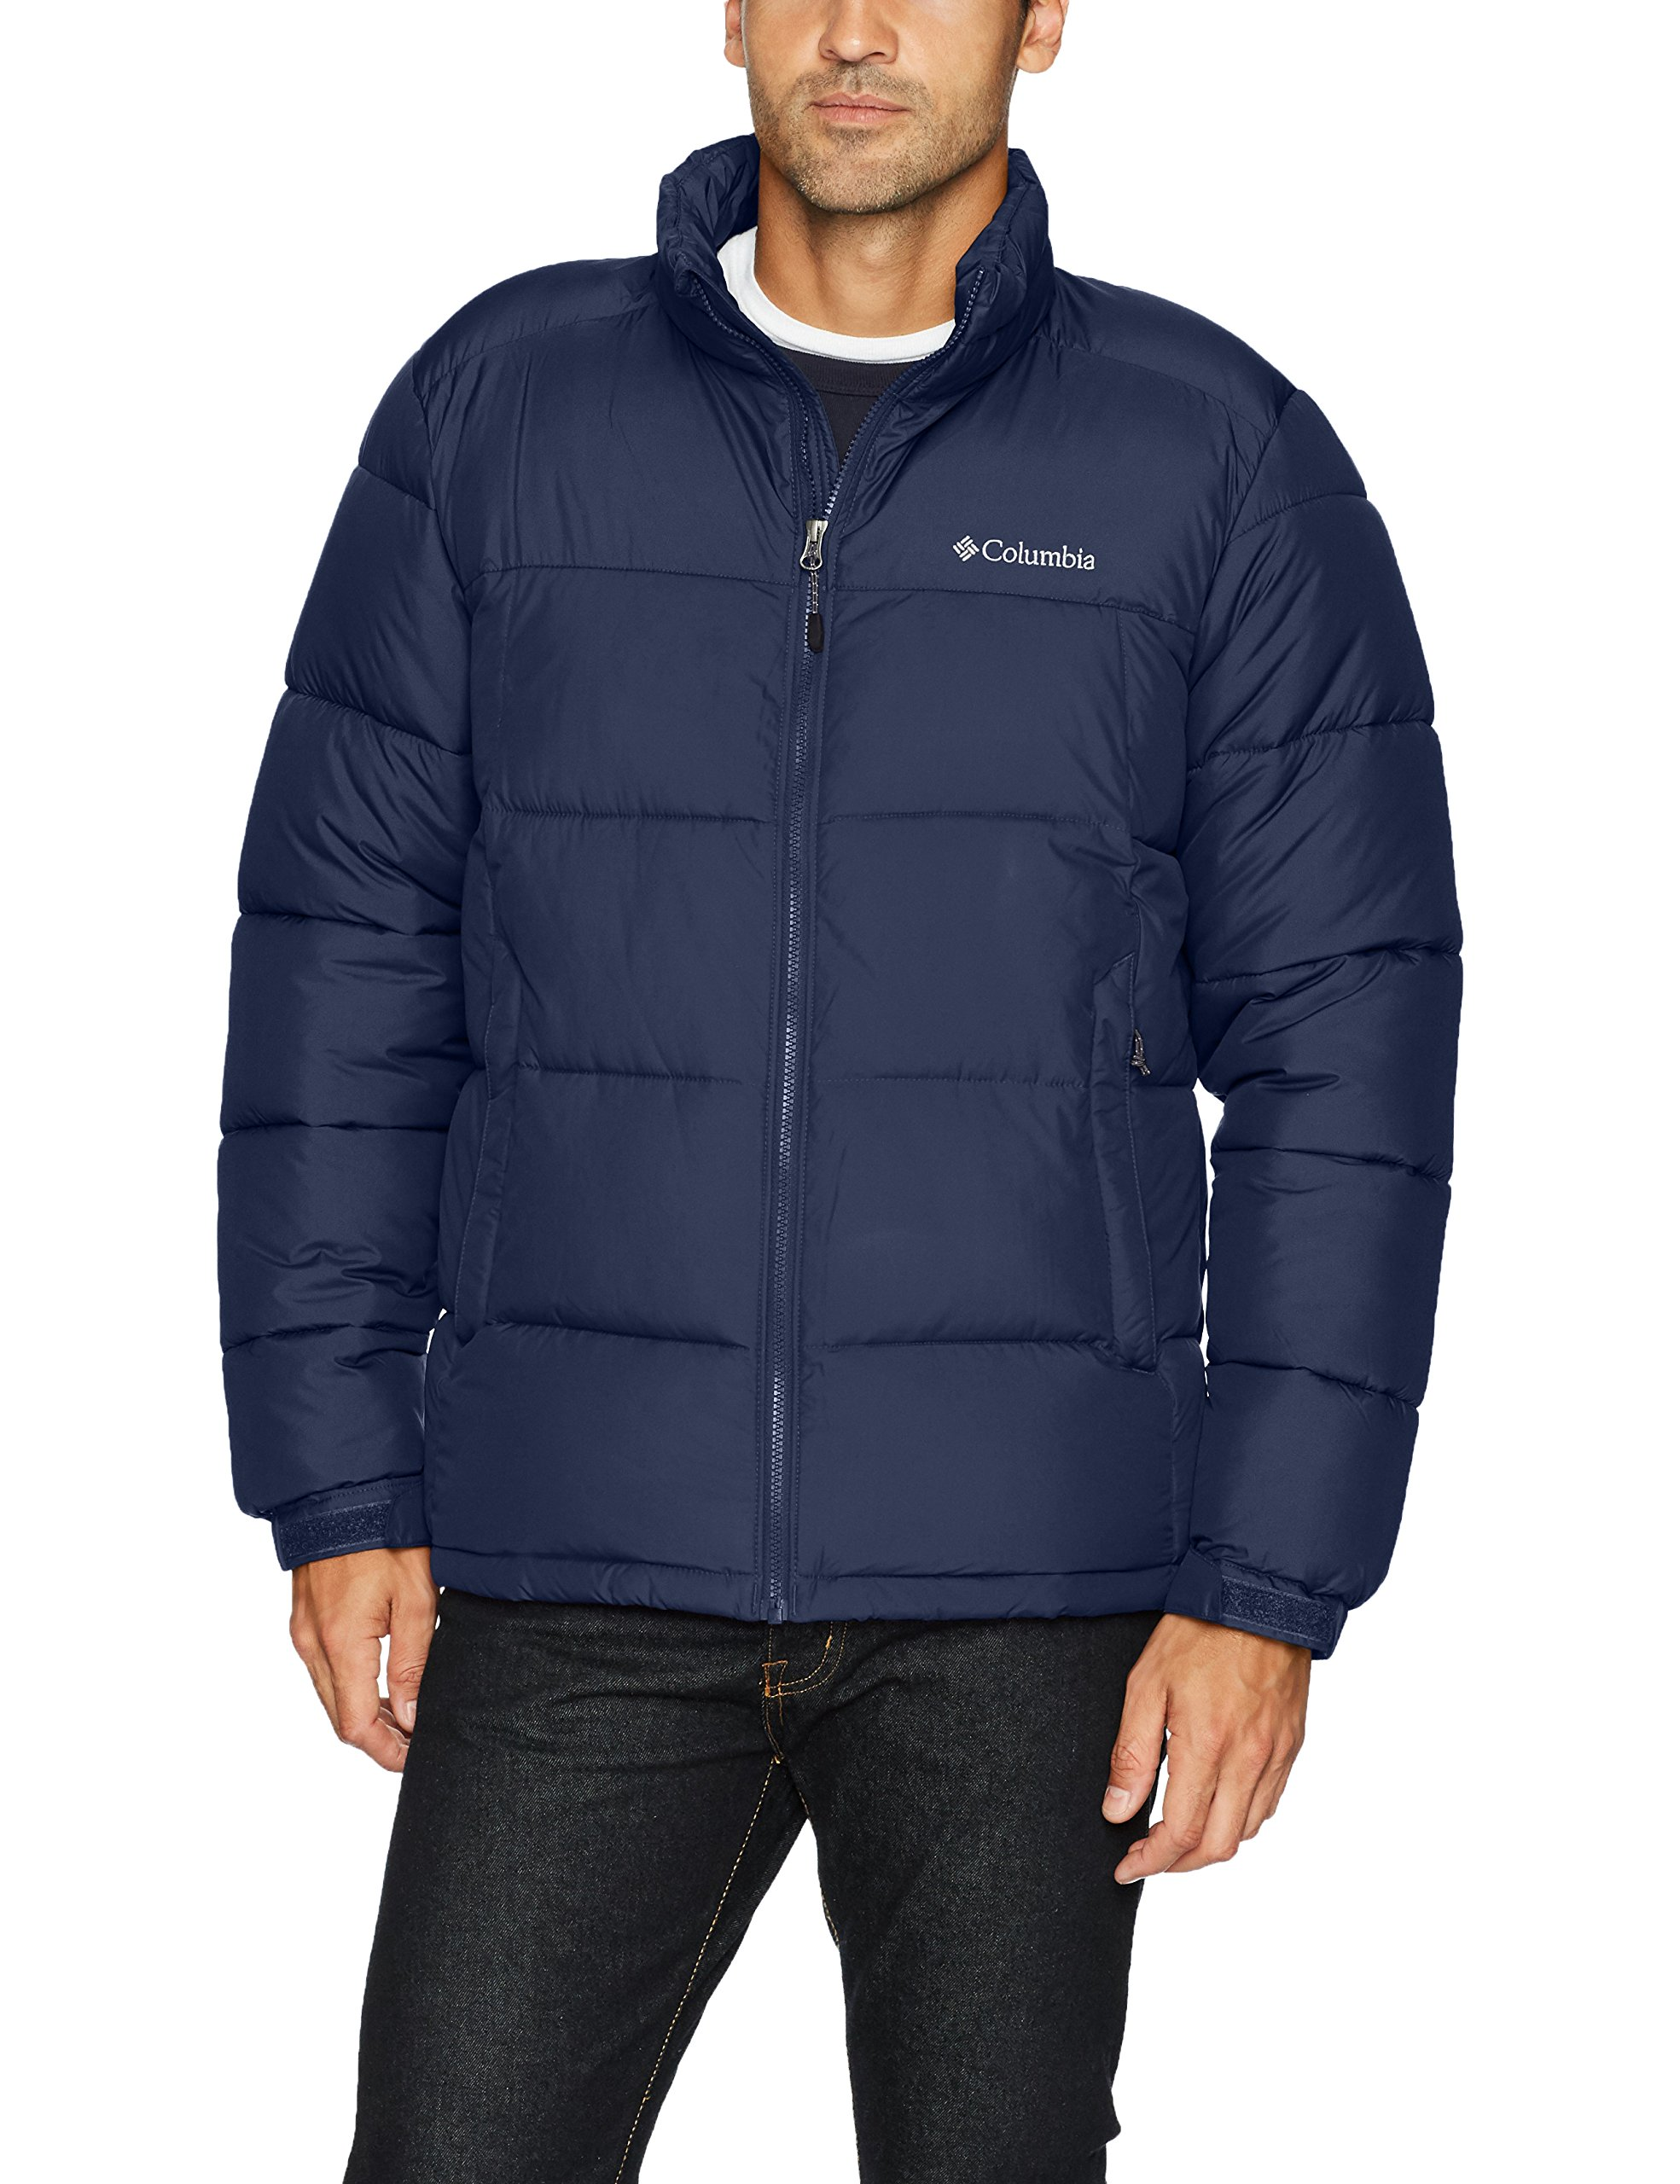 Columbia Men's Pike Lake Jacket, X-Large, Collegiate Navy by Columbia